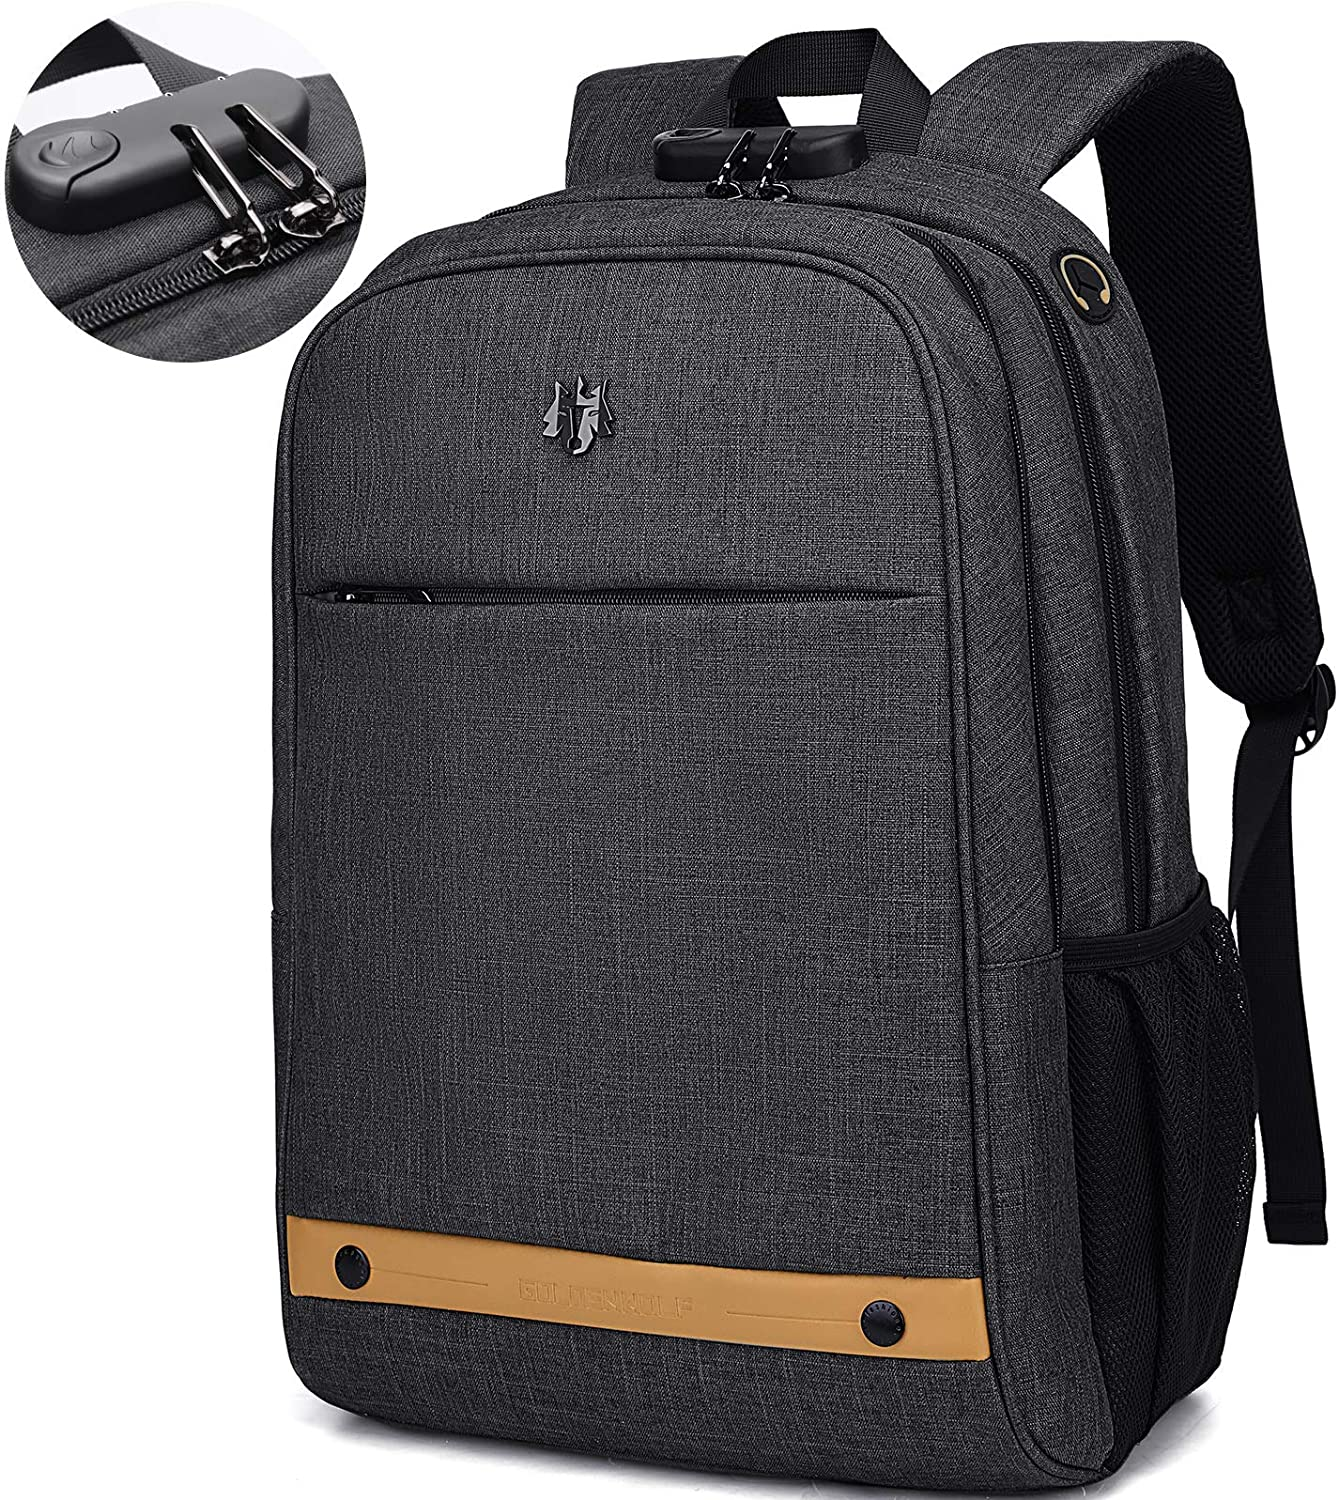 Amazing, Practical Laptop Backpack